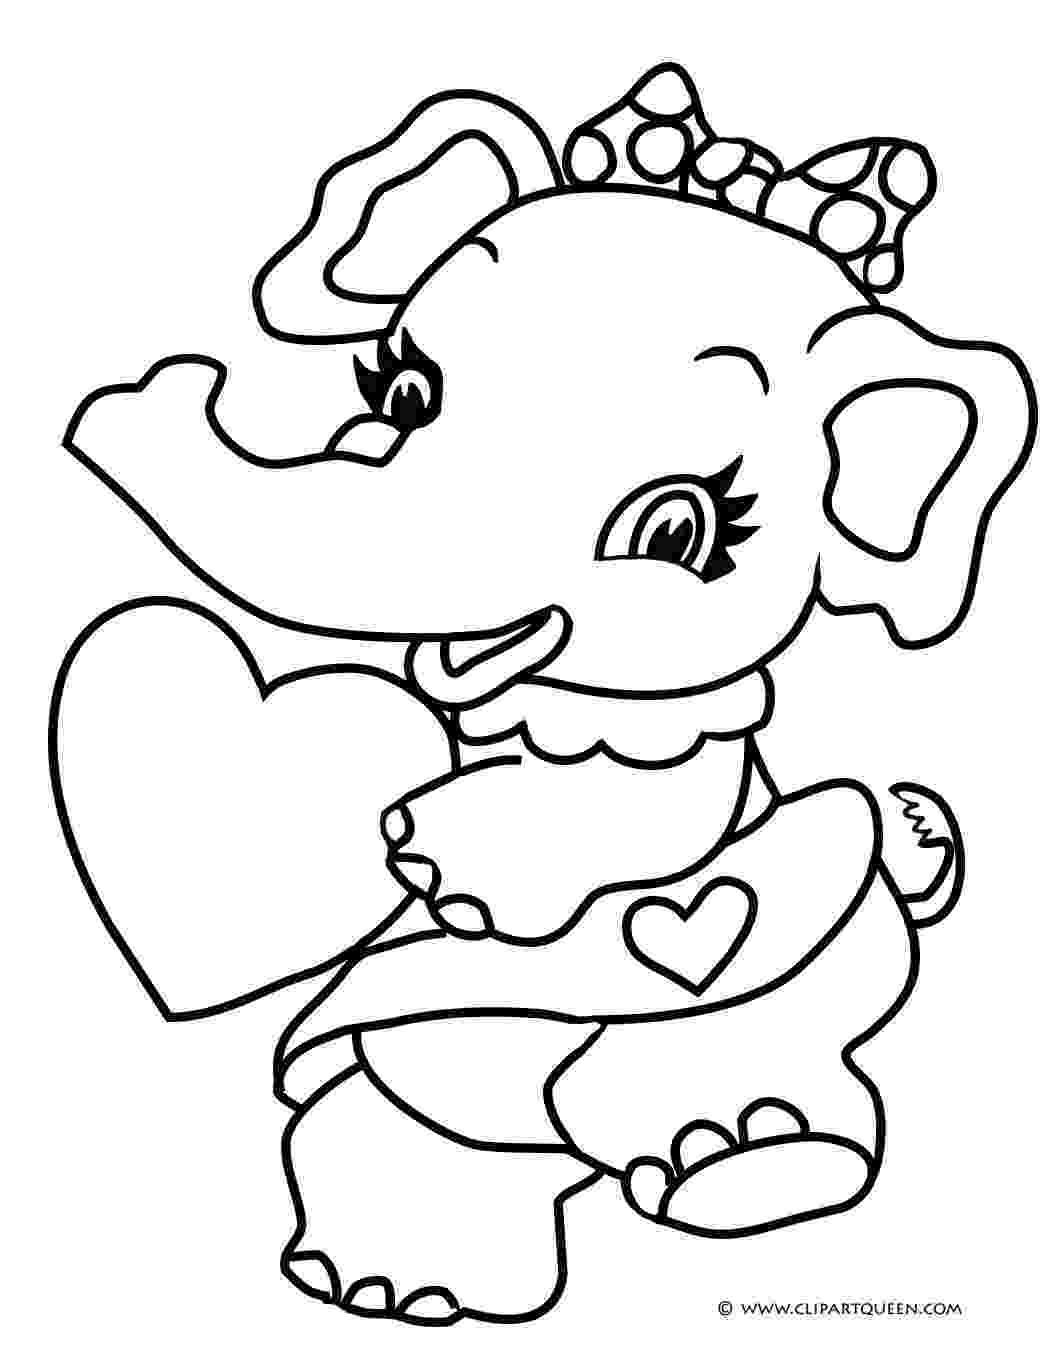 valentine day coloring sheets best coloring page dog valentines day hearts coloring pages day coloring sheets valentine